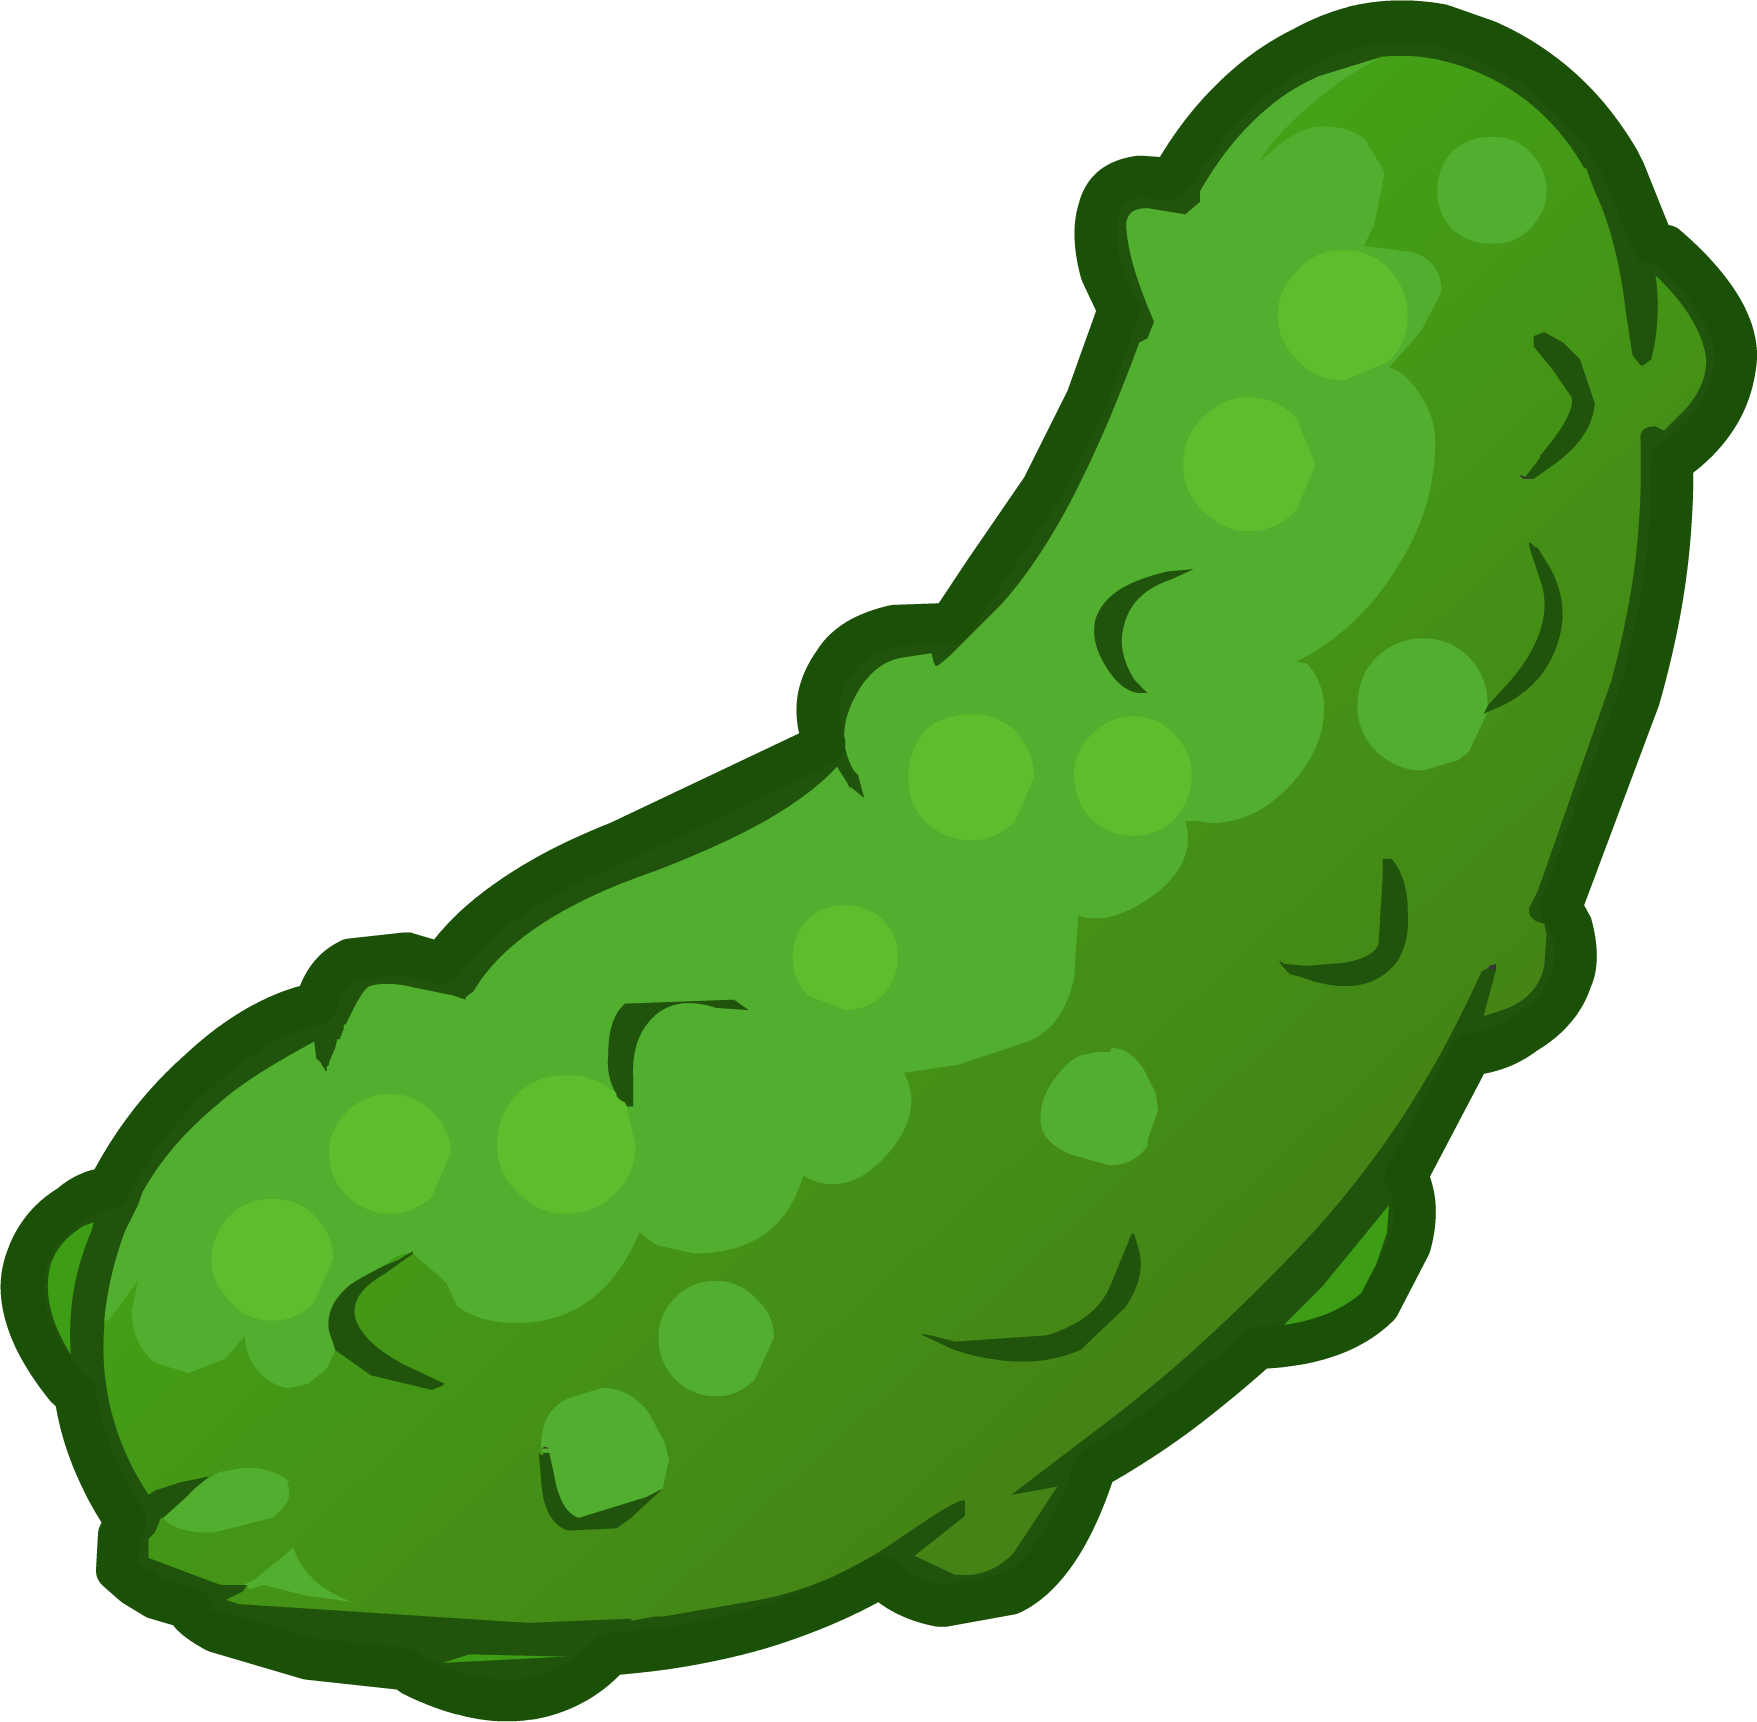 49 images of Pickle Clip Art . You can use these free cliparts for ...